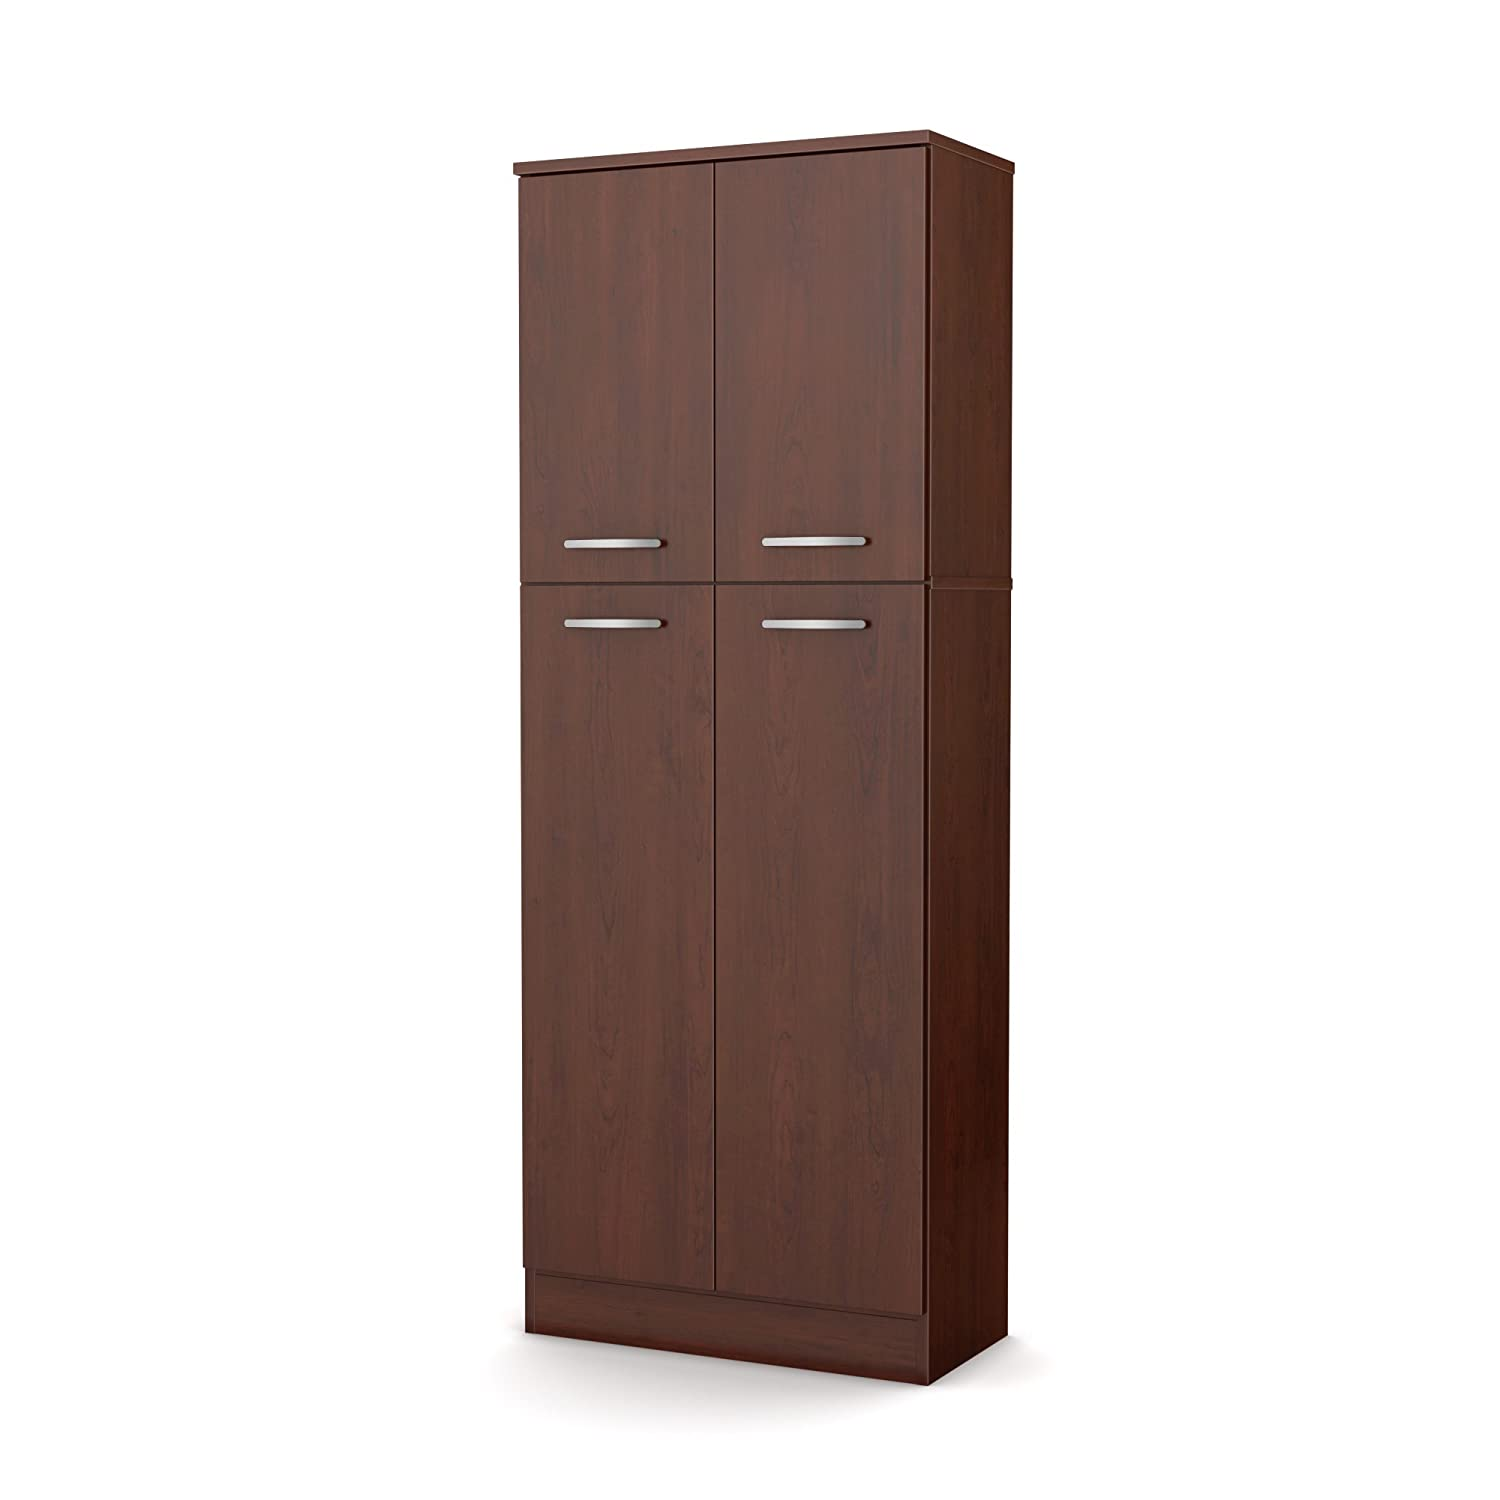 Kitchen cabinet pantry cupboard brown organizer food for The kitchen cupboard